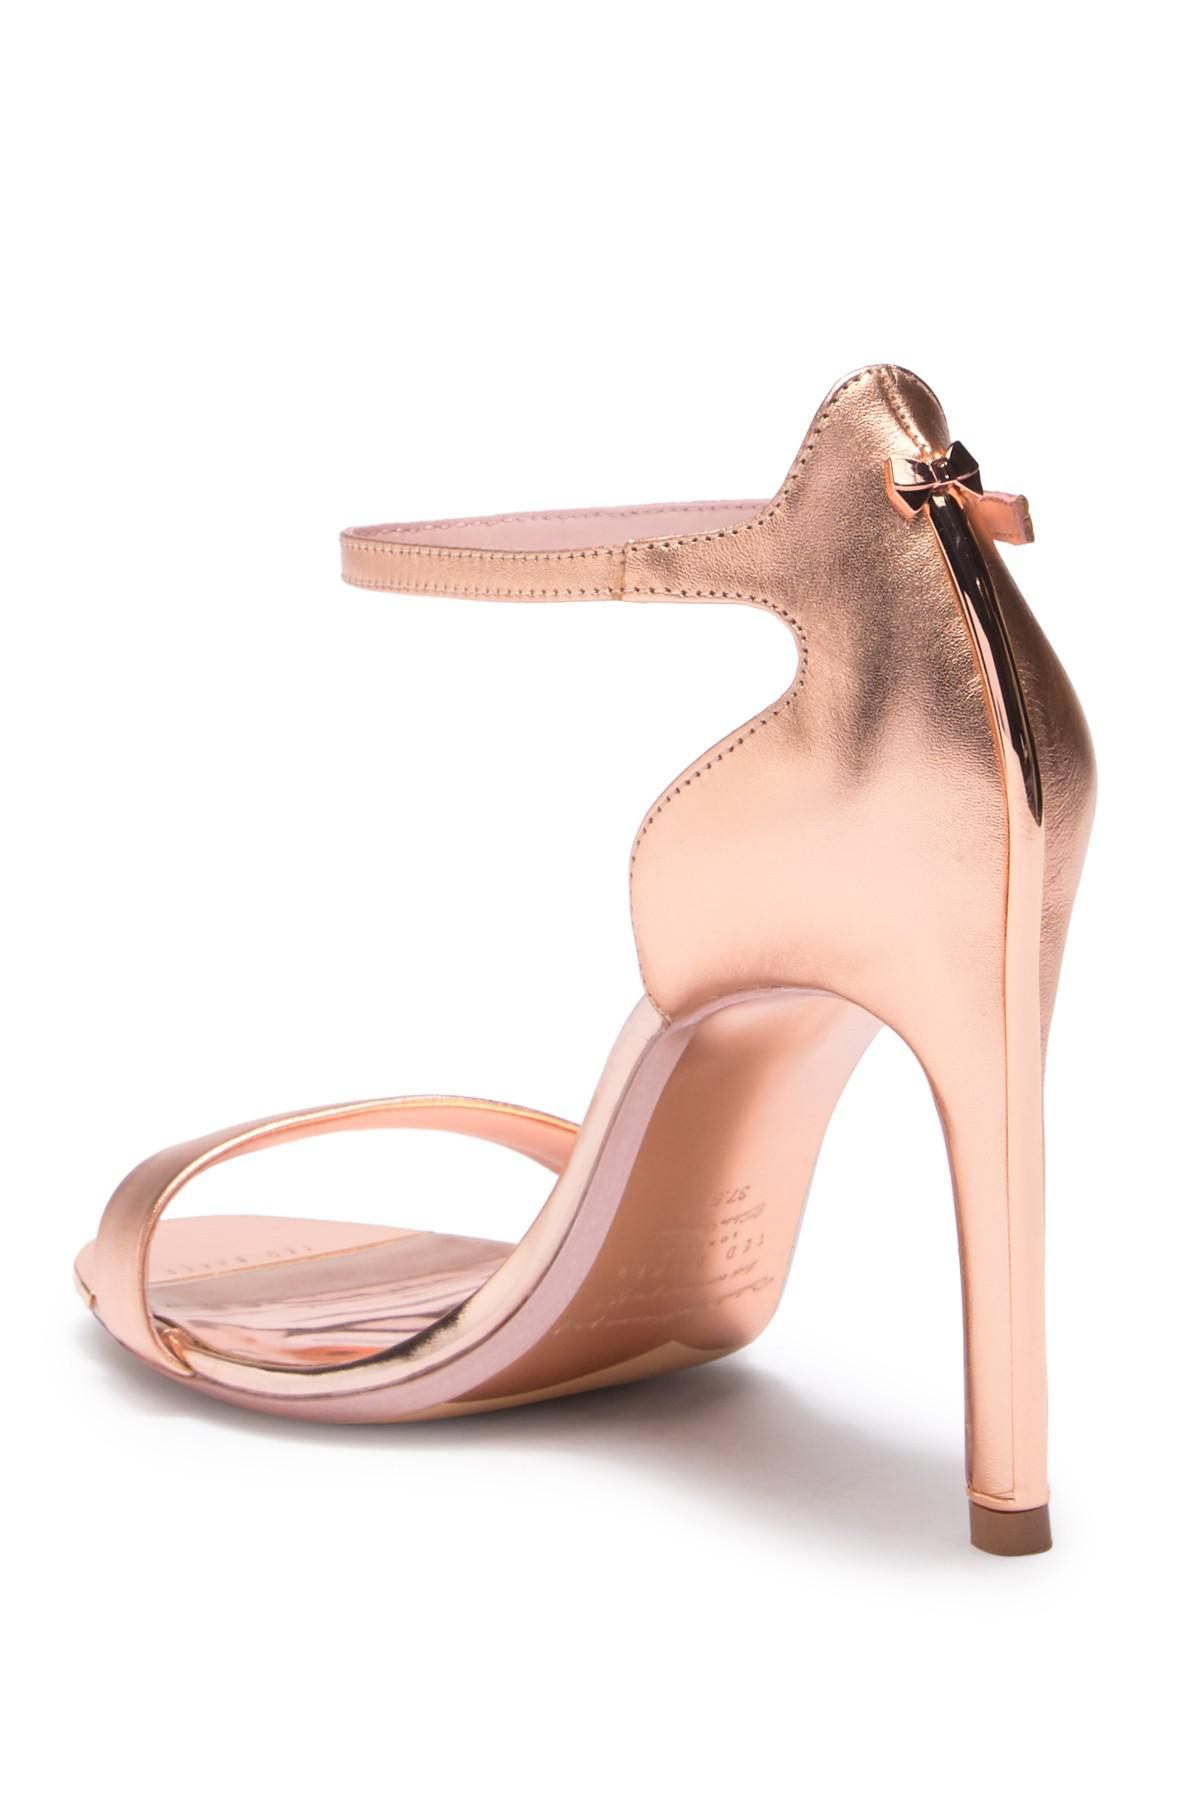 ee4fecd57d87 Lyst - Ted Baker Sharlot Leather Heel Sandal in Pink